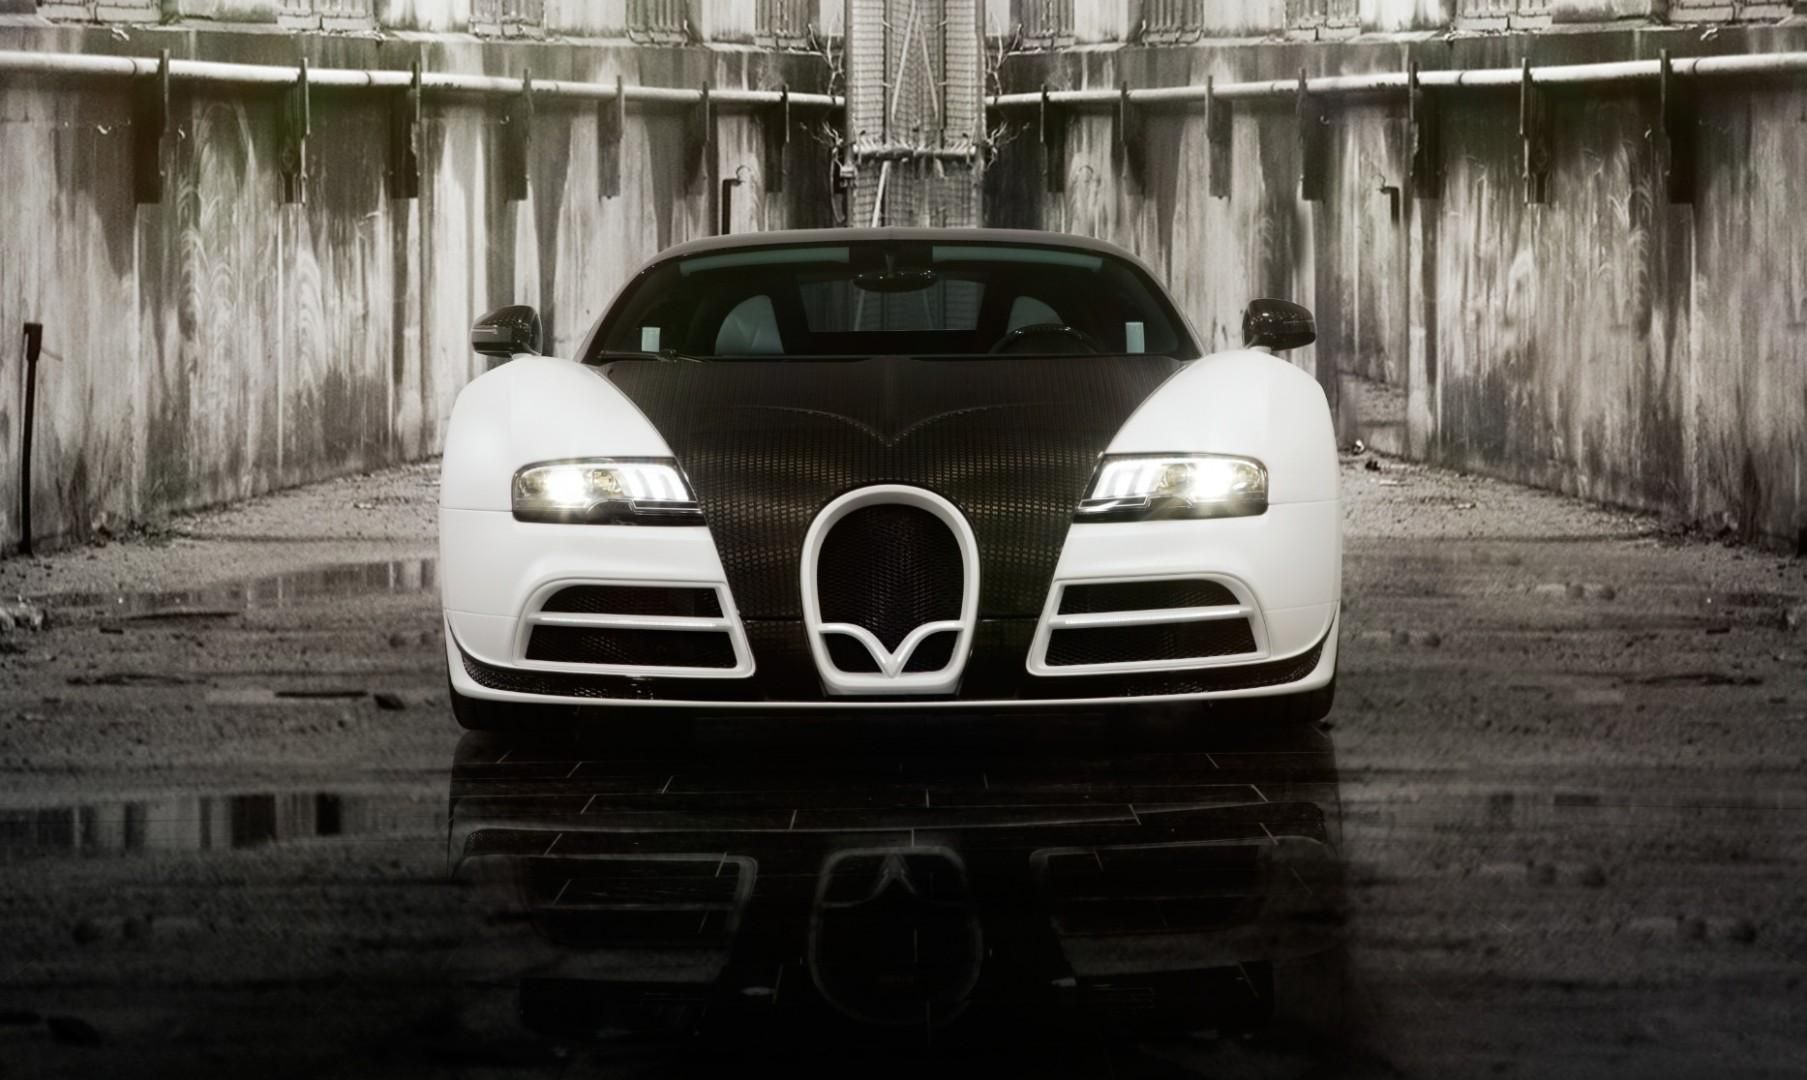 b3306a15defc7df53a6f1befbeee0401 Cool Bugatti Veyron Price In Uae 2015 Cars Trend